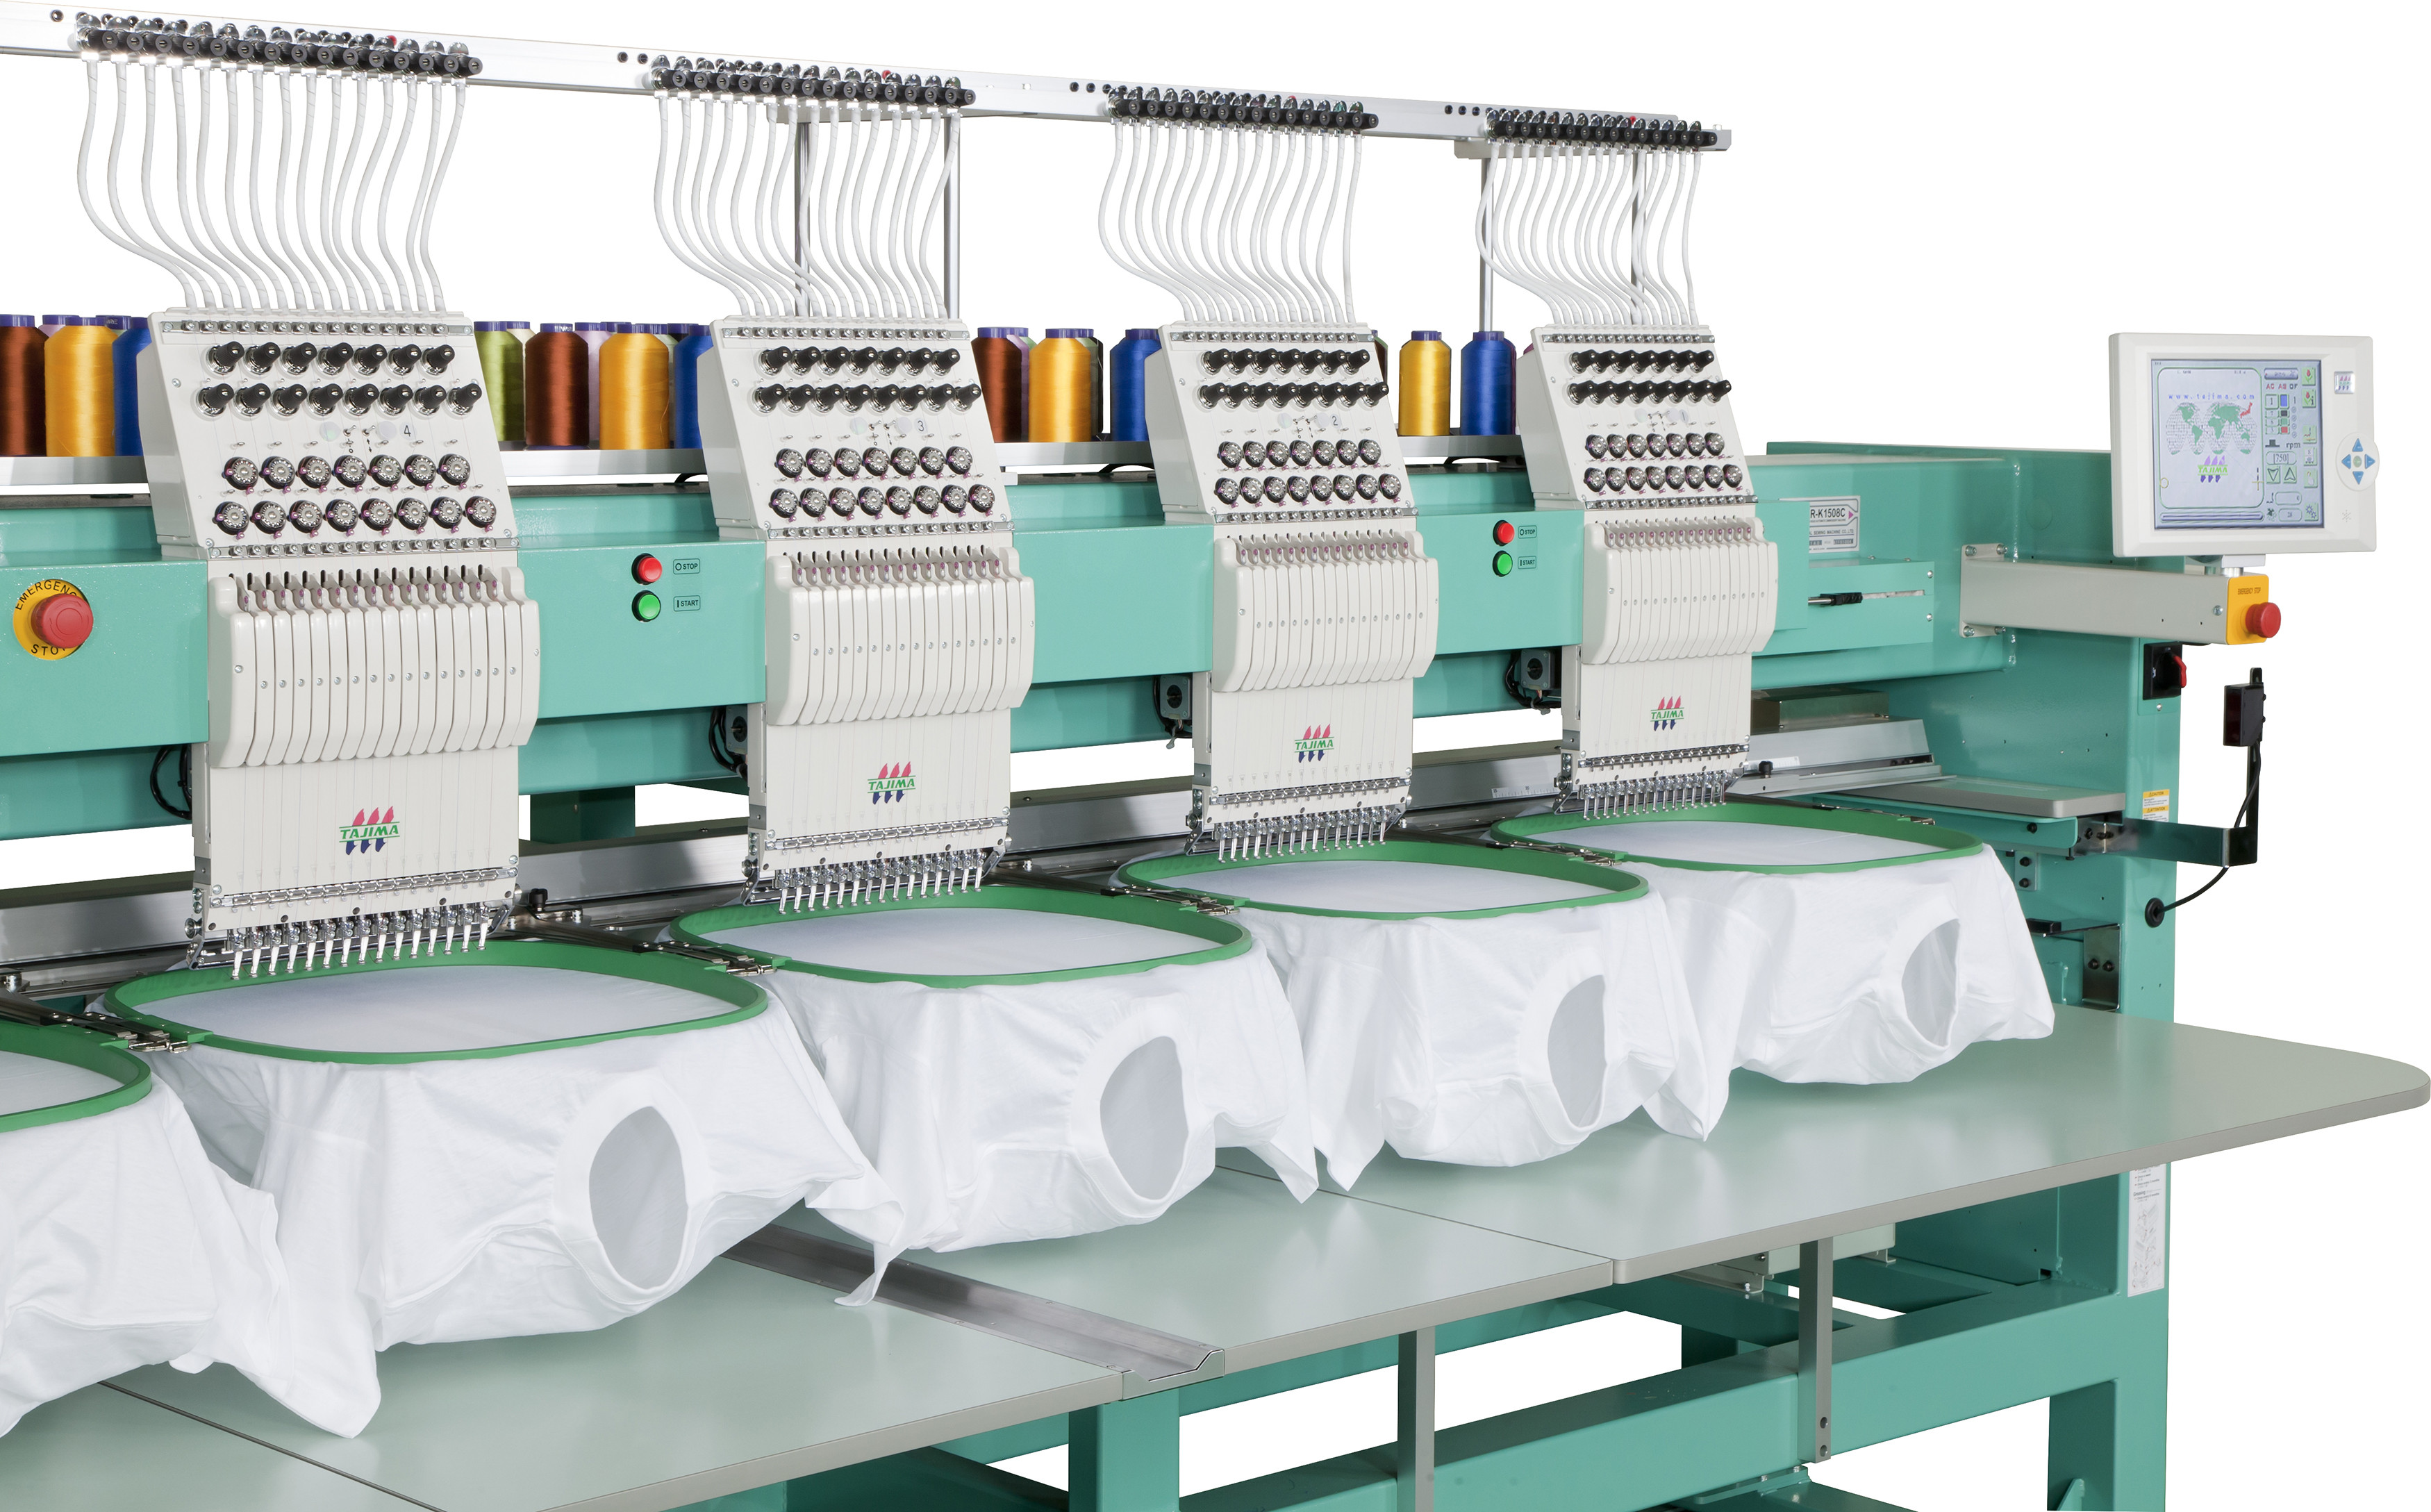 Used Embroidery Machines Unique New Tajima Tmar Kc Takes Embroidery to the Next Level Of Contemporary 41 Images Used Embroidery Machines